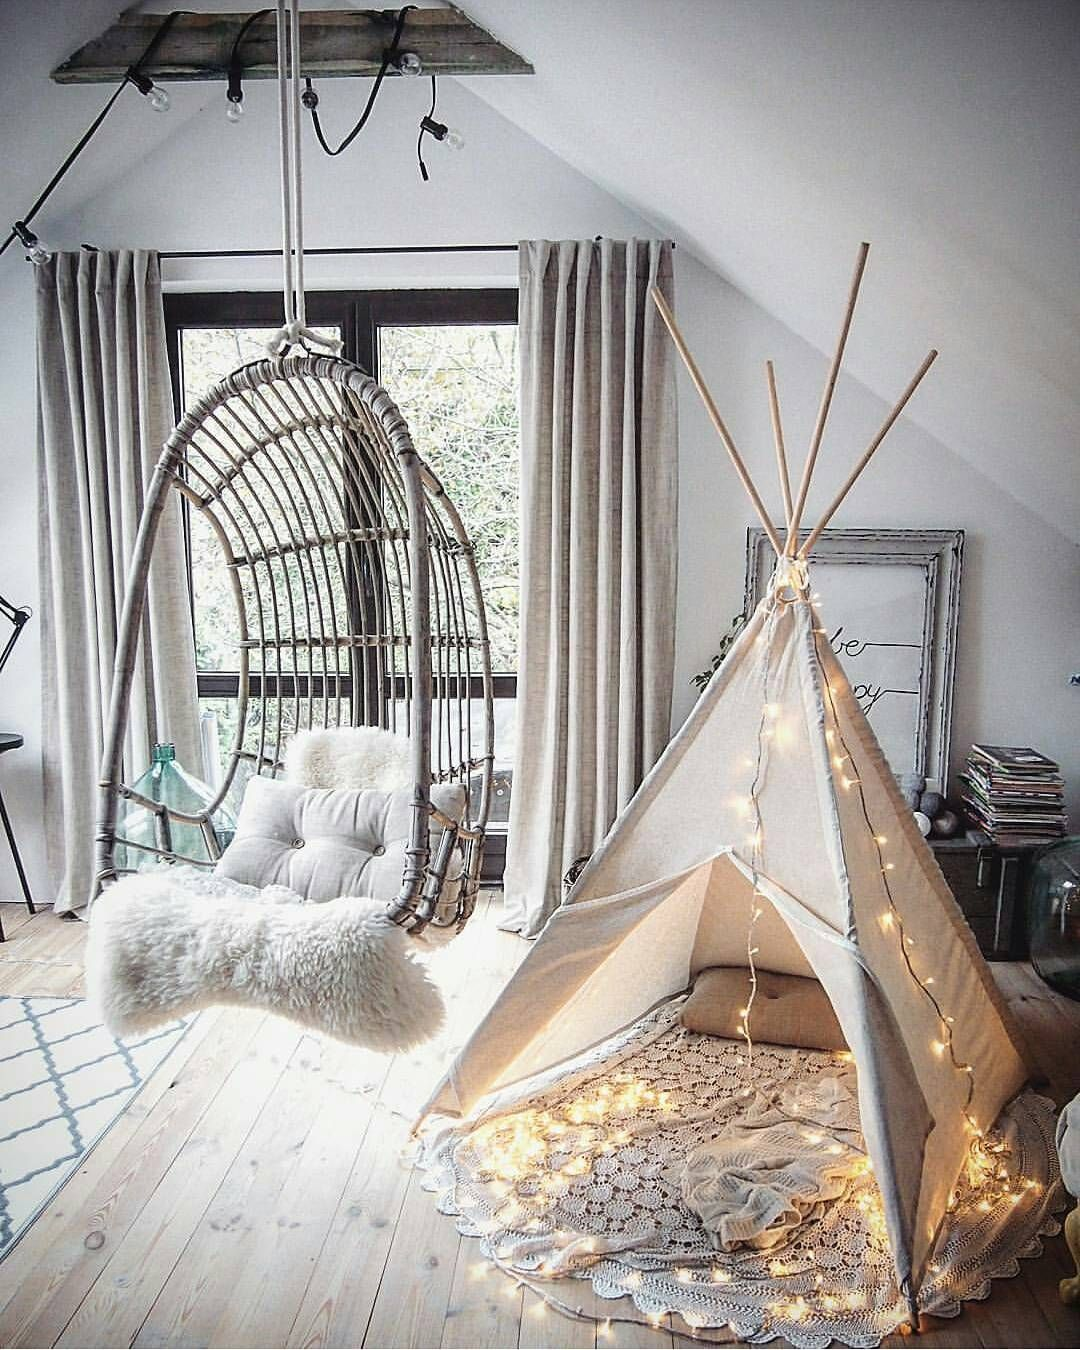 39 Attic Living Rooms That Really Are The Best: Hello, Gorgeous Tent And Hanging Chair! Two Things I